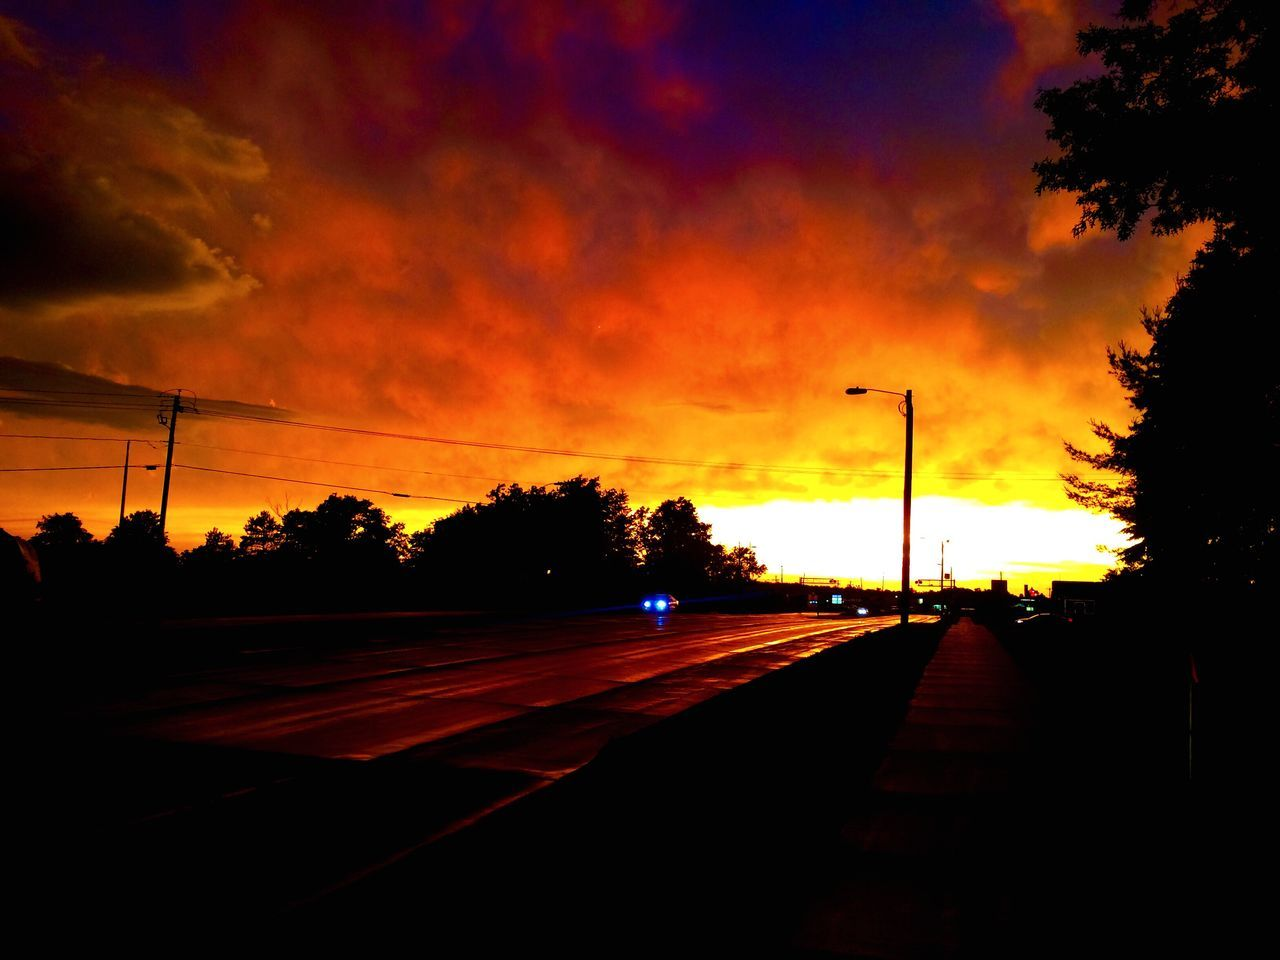 sunset, silhouette, transportation, cloud - sky, sky, tree, car, road, dramatic sky, no people, orange color, the way forward, nature, mode of transport, land vehicle, street light, scenics, beauty in nature, outdoors, day